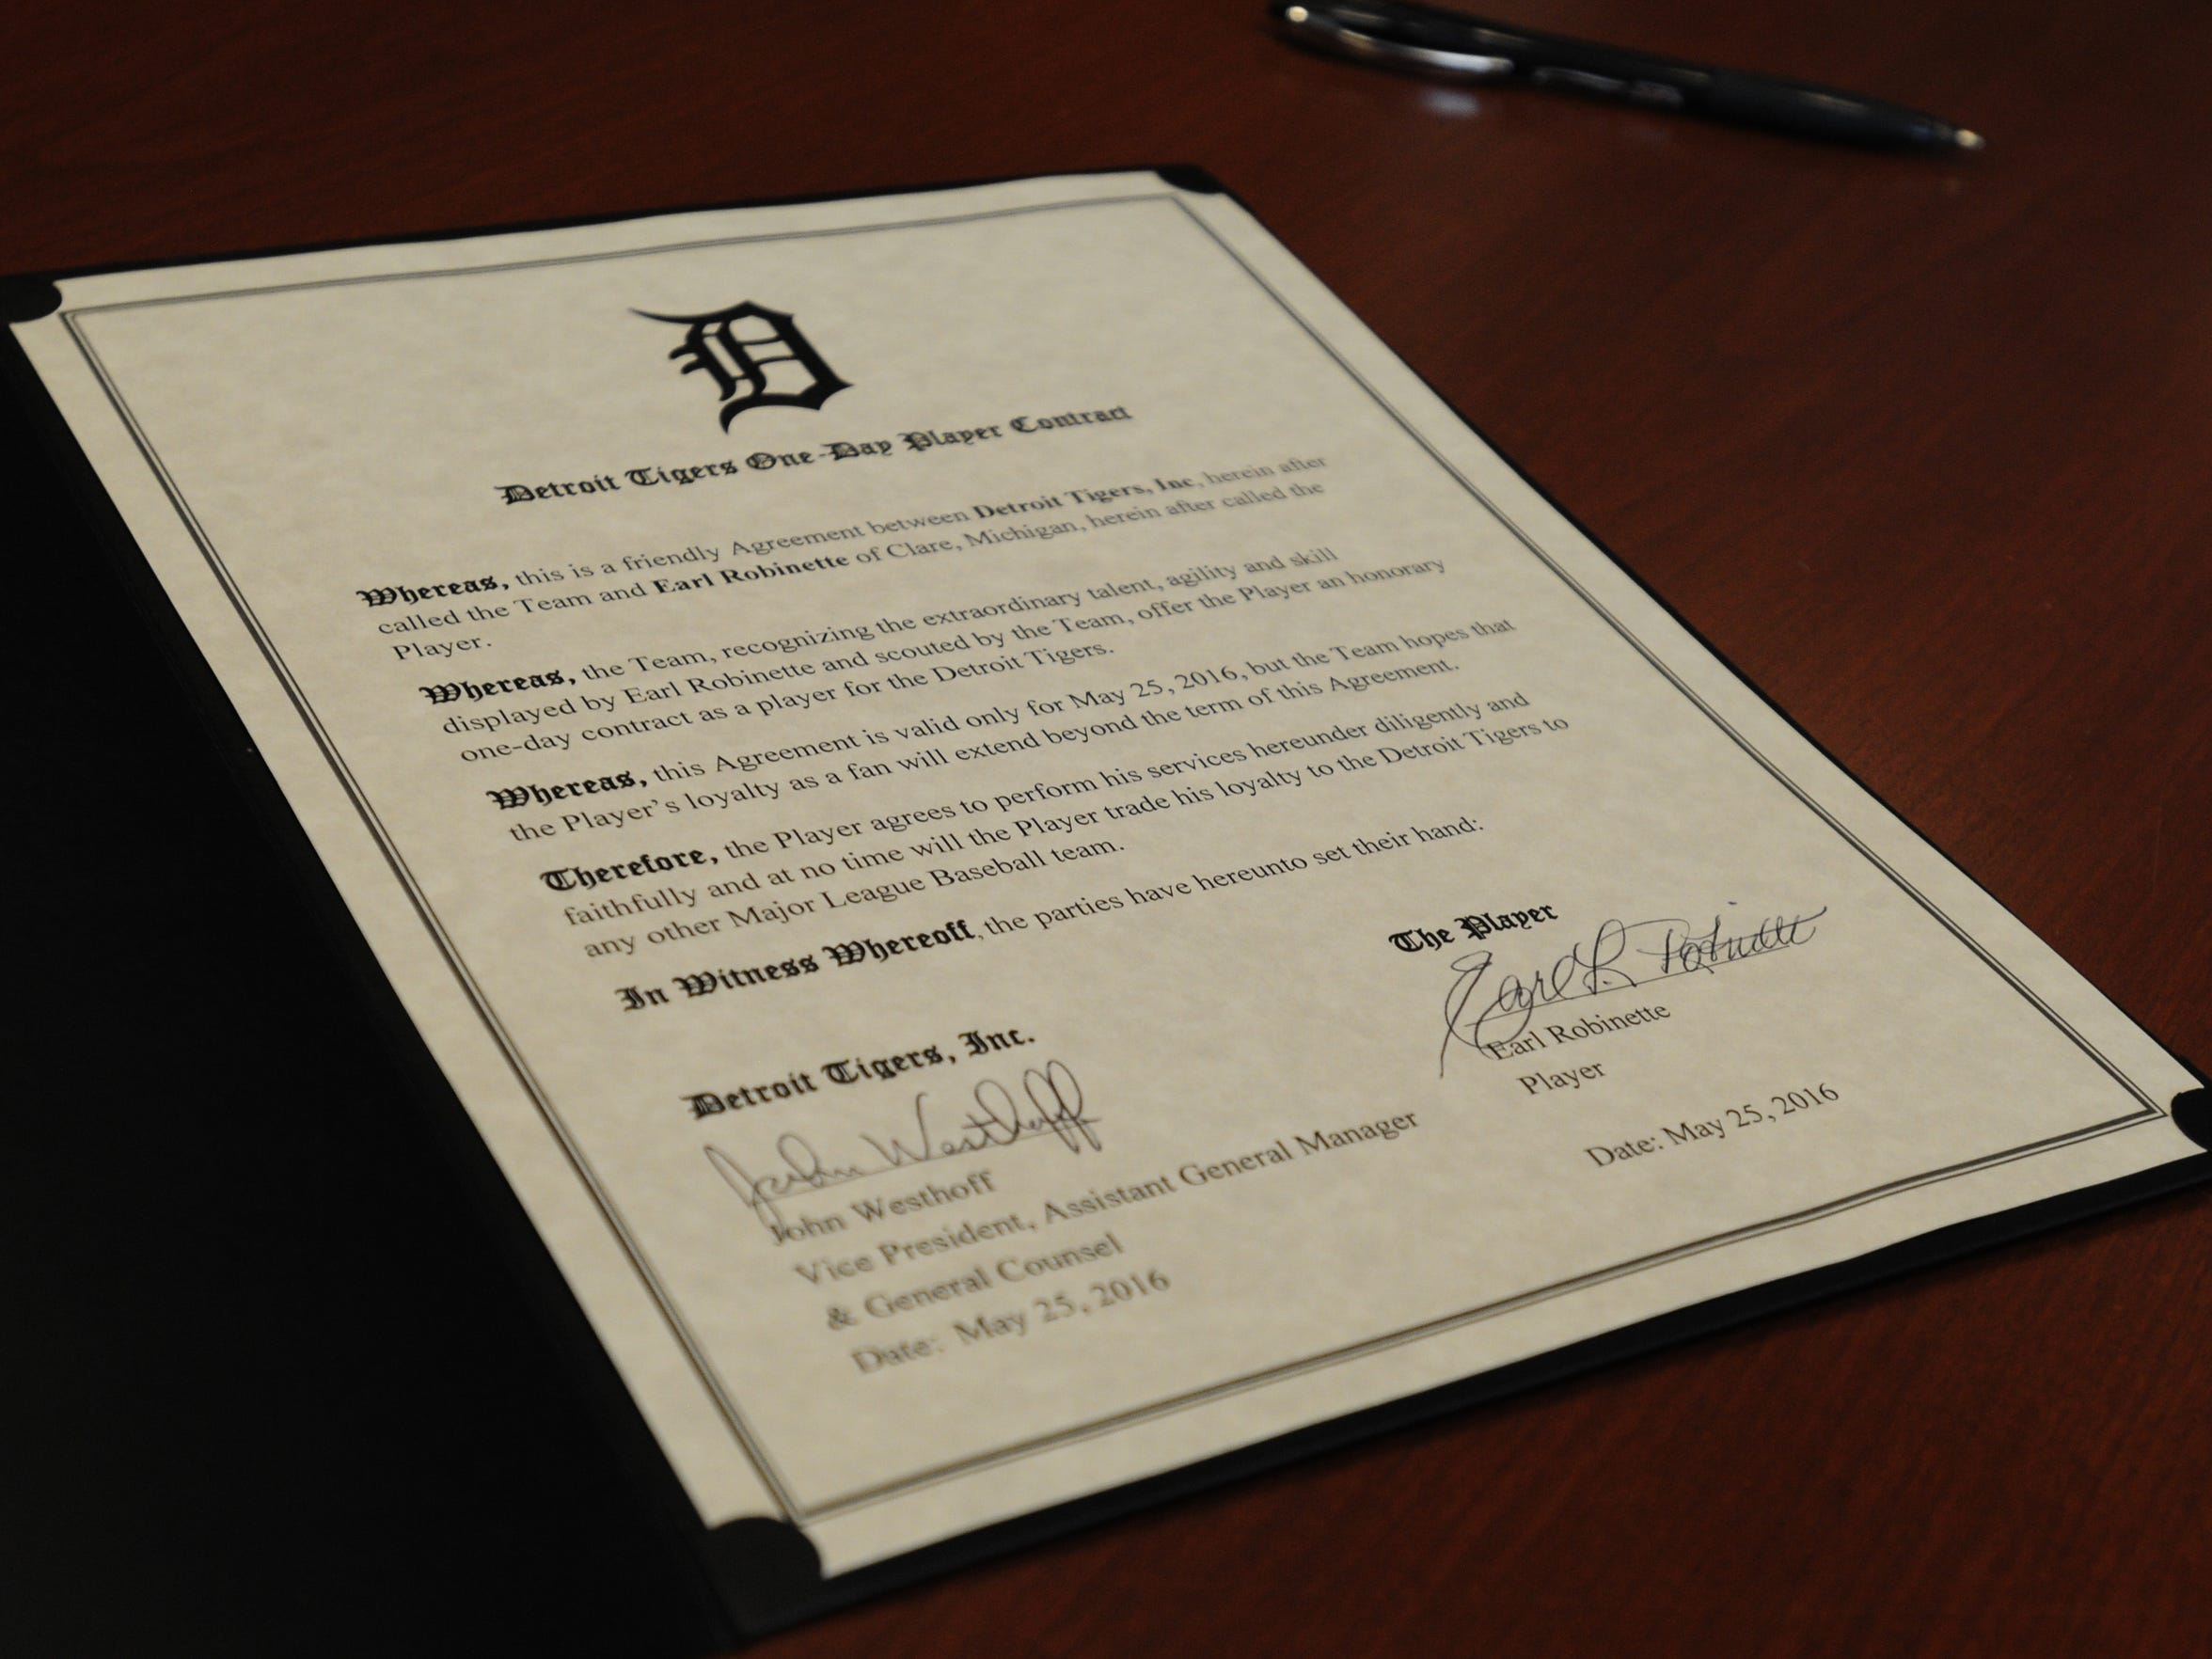 The contract Earl Robinette signed at Comerica Park